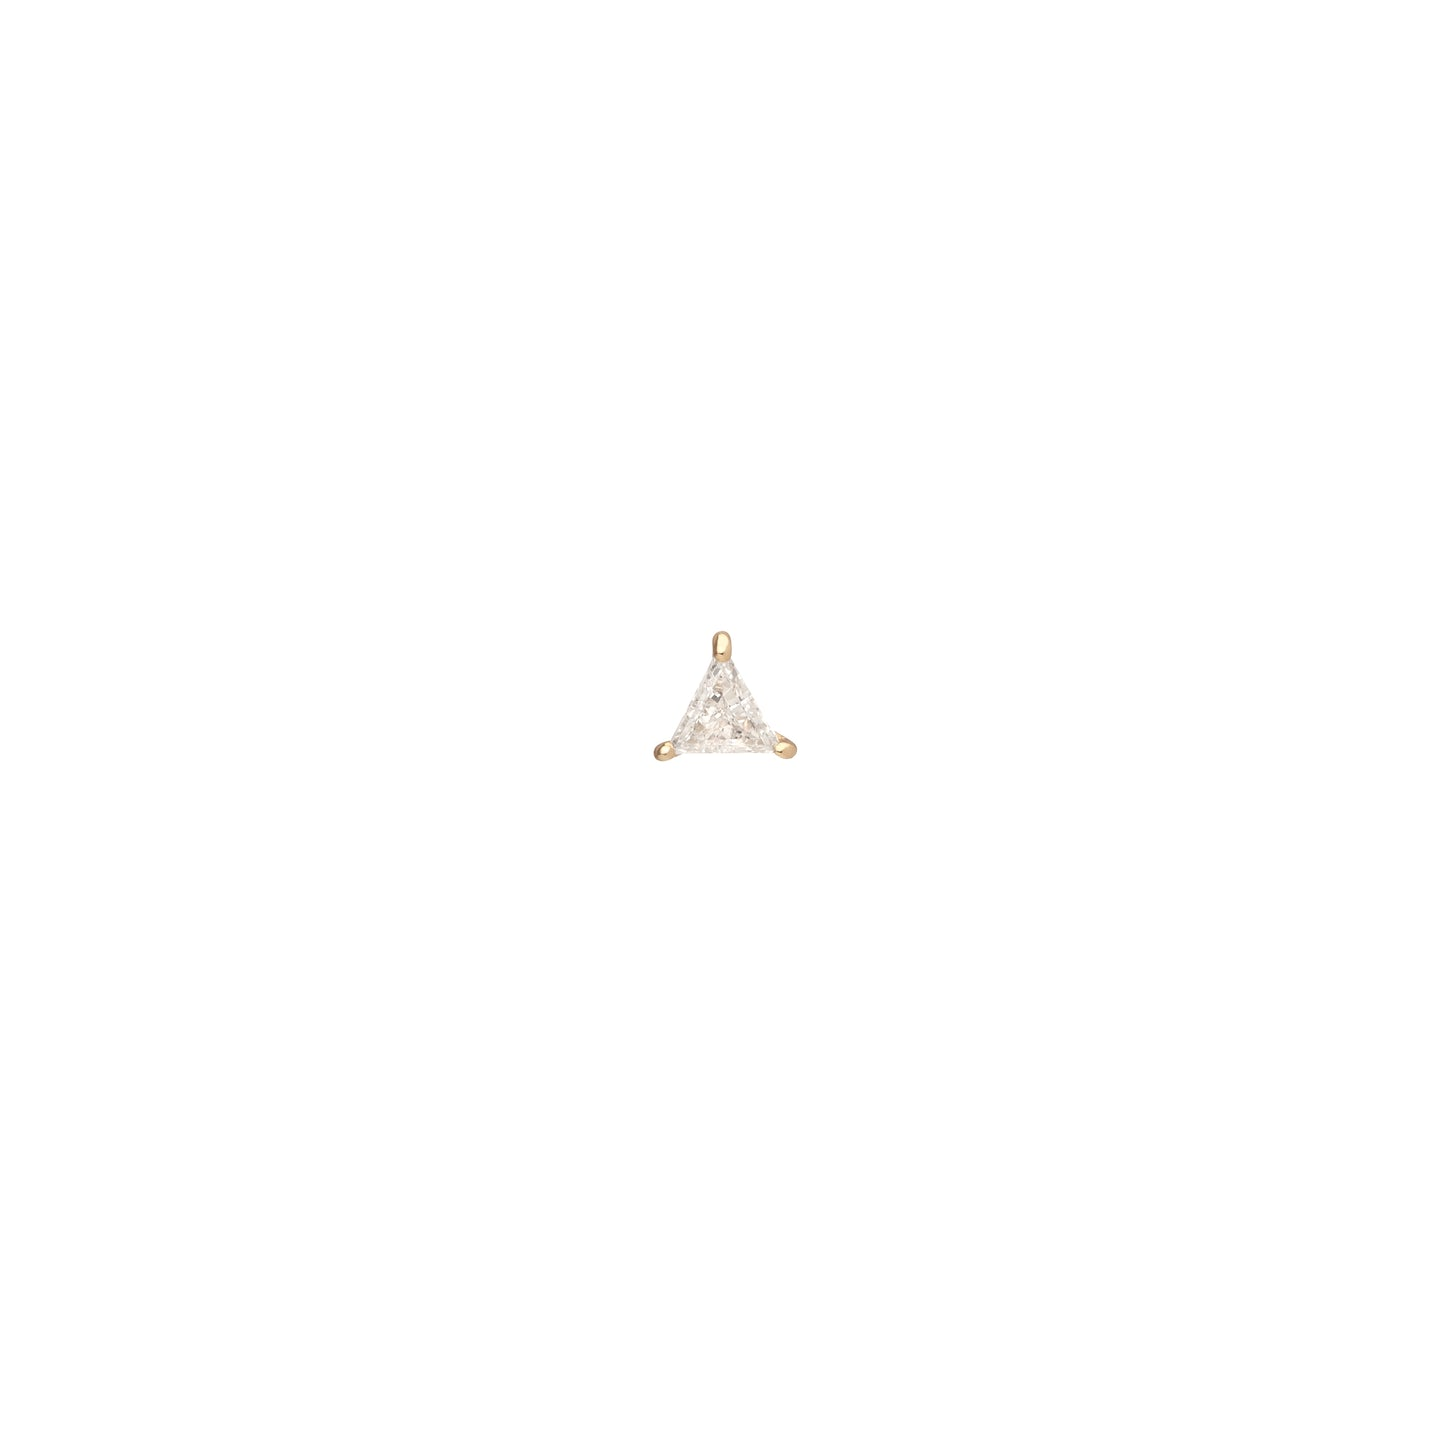 18K Yellow Gold .30CT Trillion Cut Lab Grown Diamond Stud